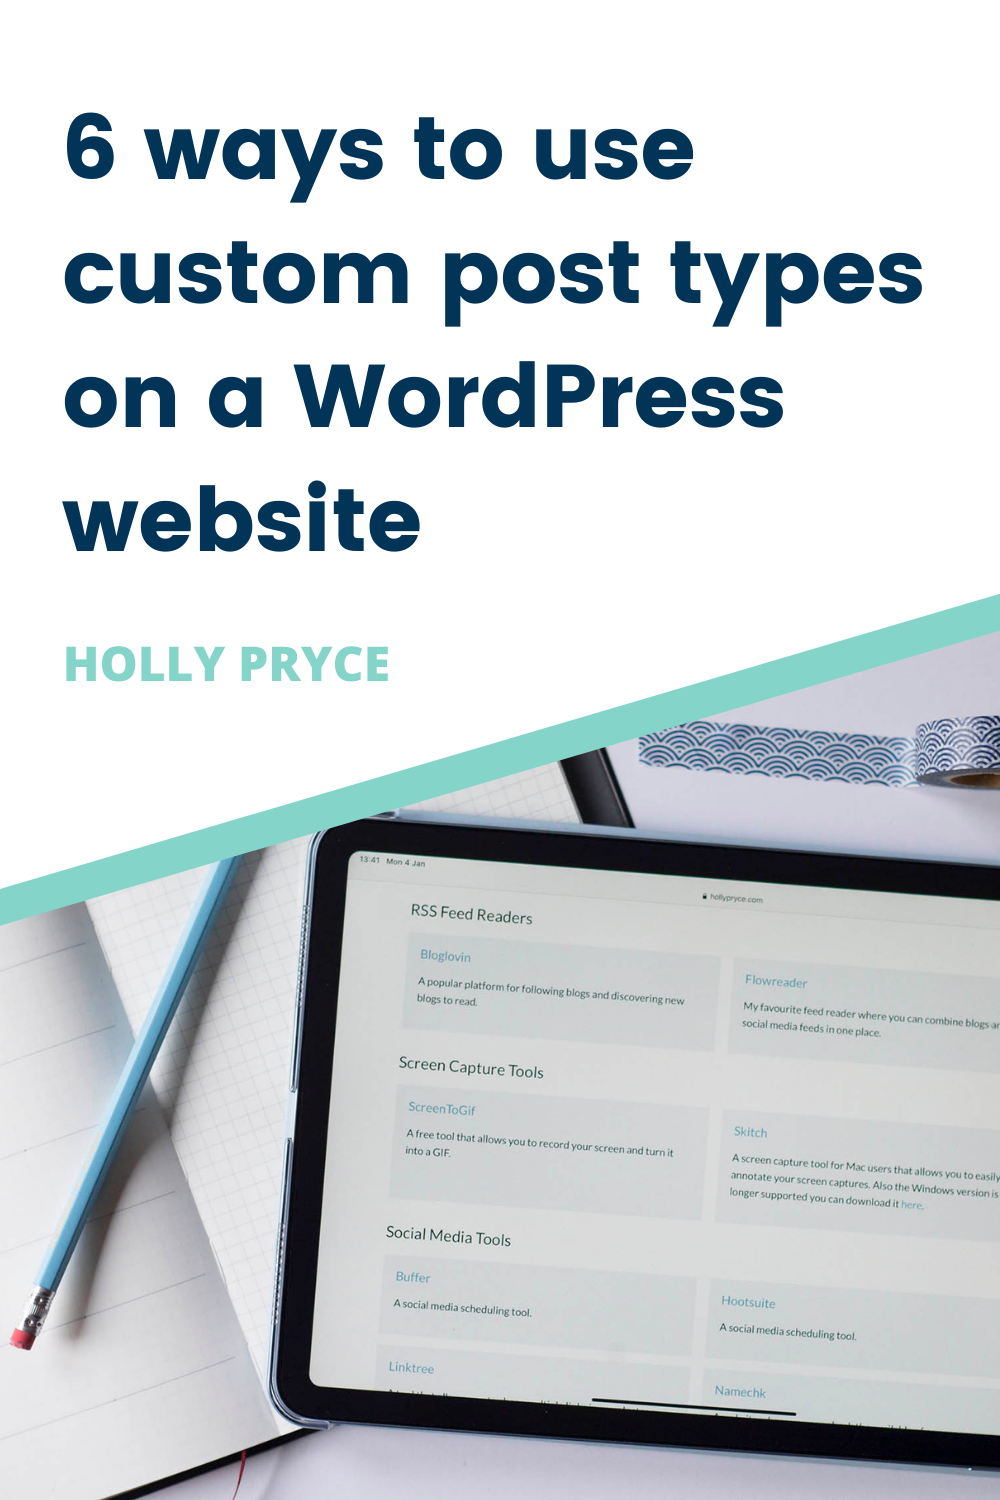 6 ways to use custom post types on a WordPress website | HollyPryce.com